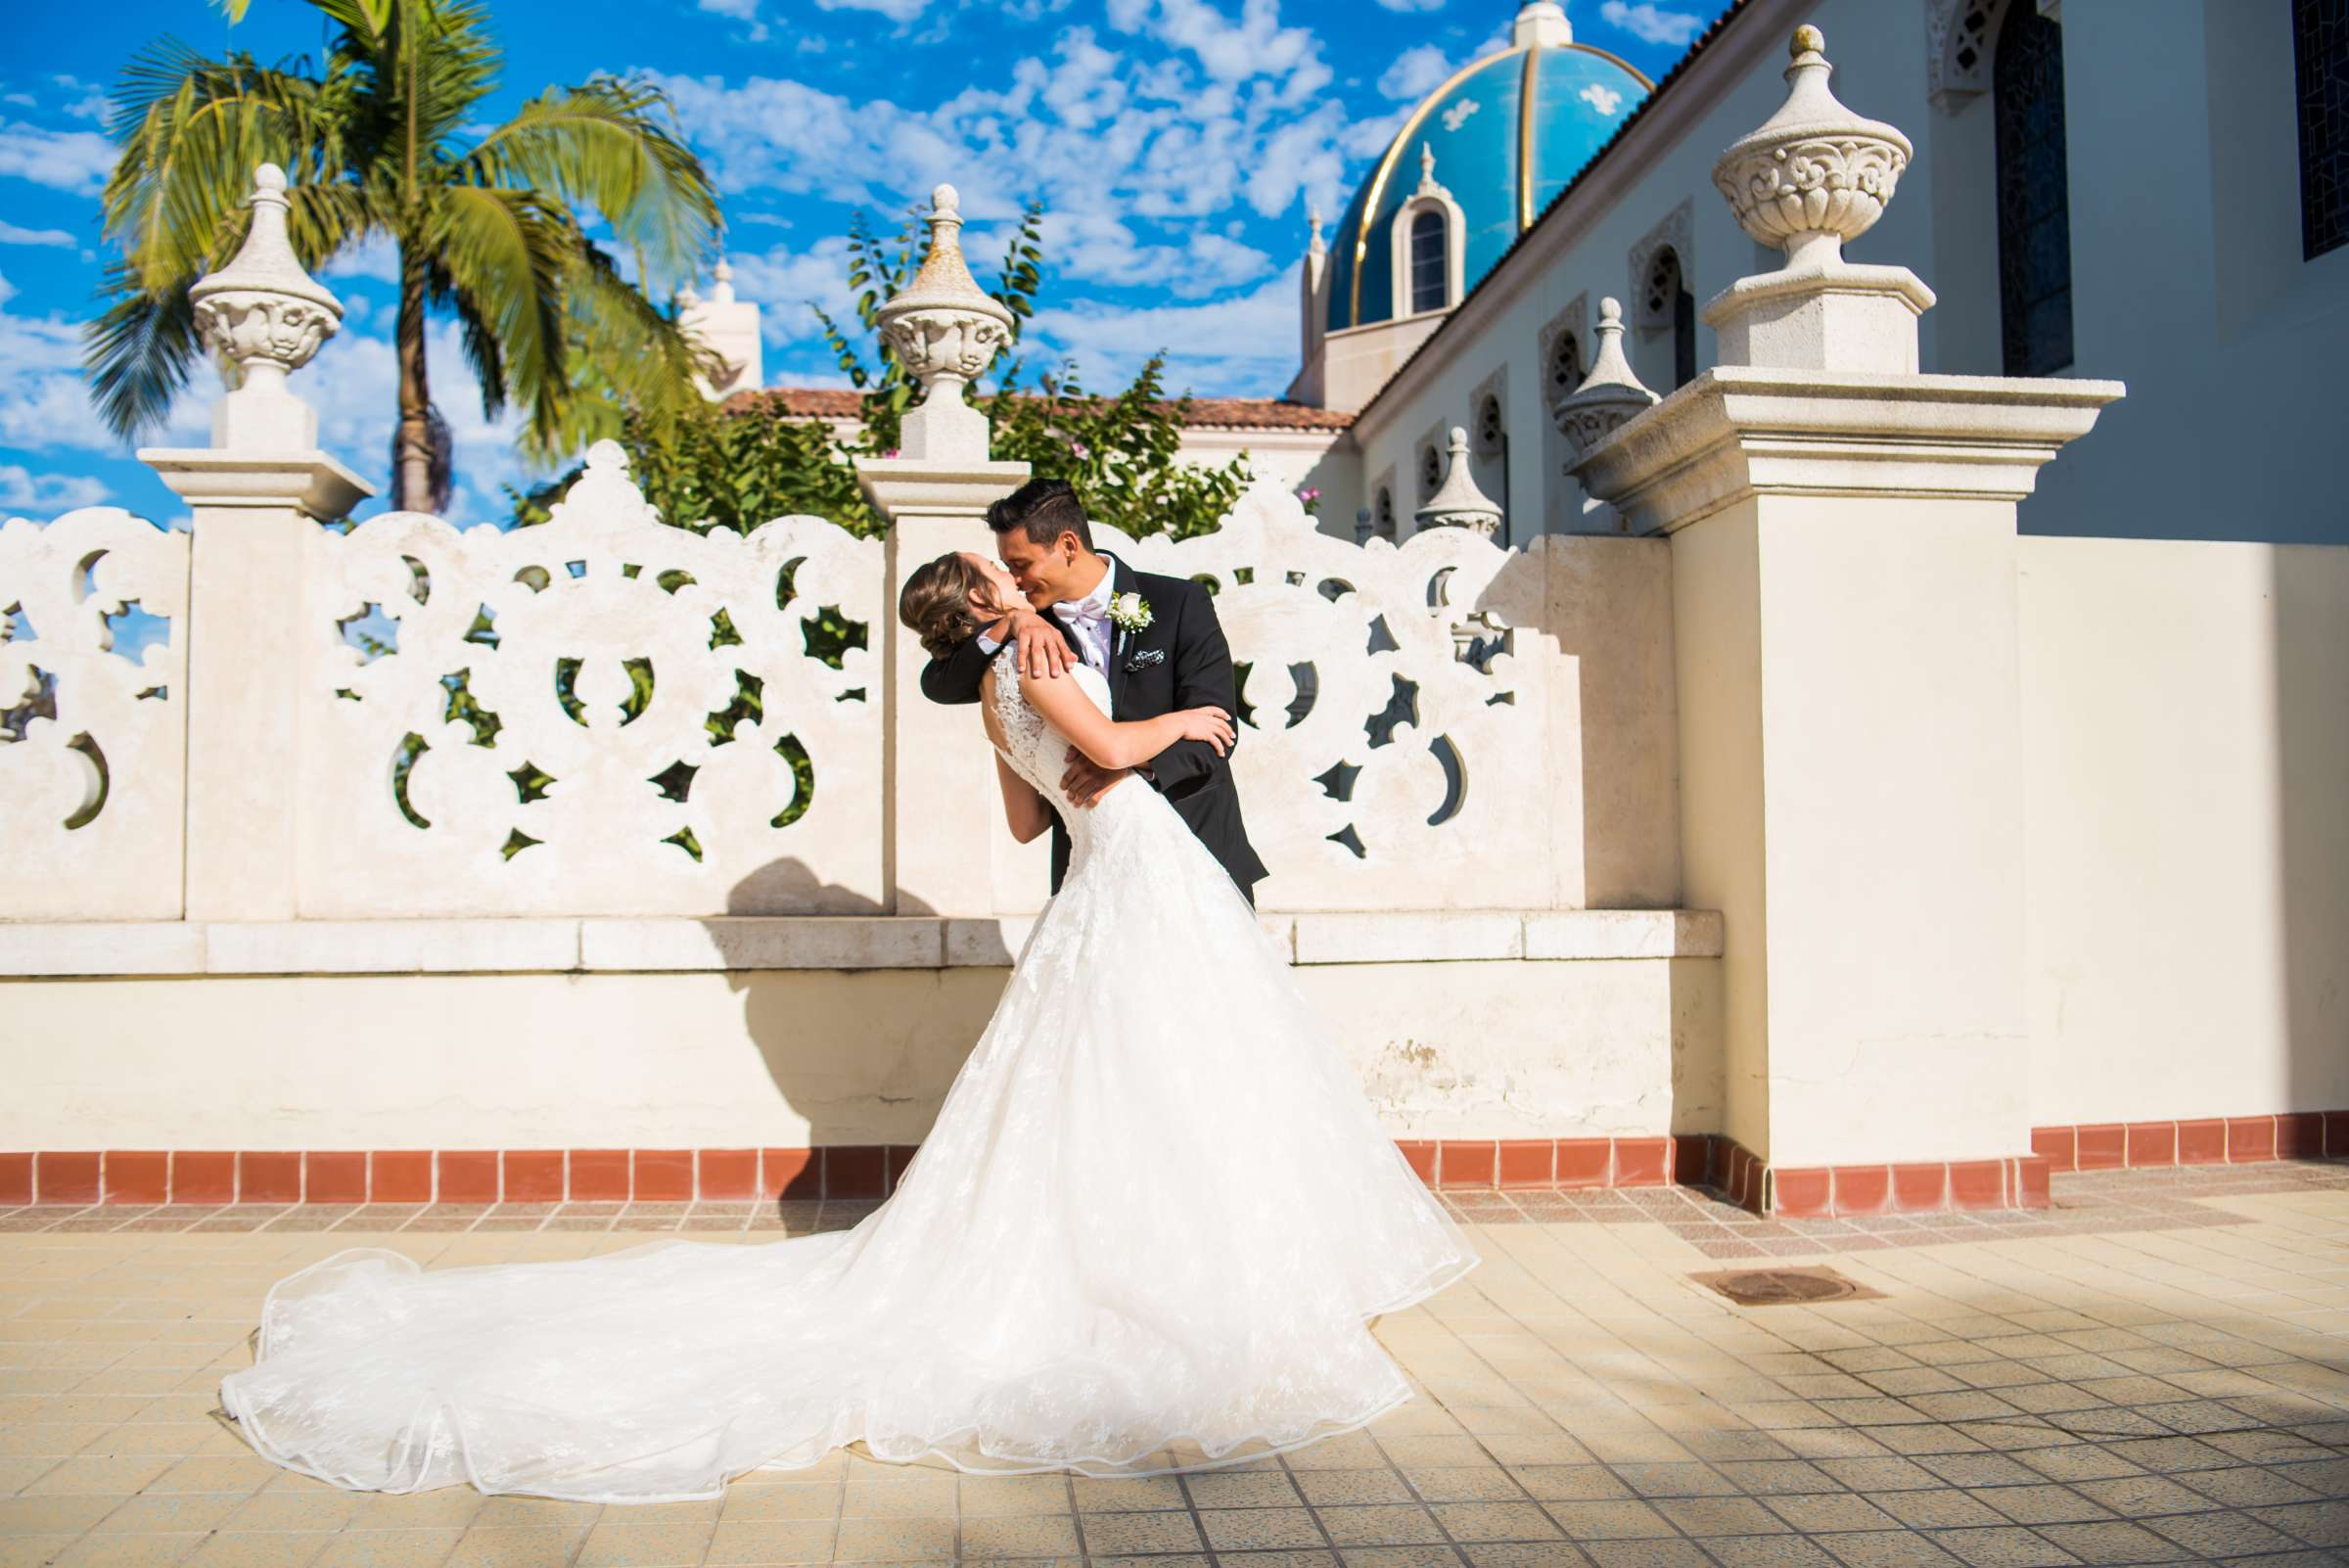 The Immaculata Wedding, Arianna and Jonah Wedding Photo #66 by True Photography